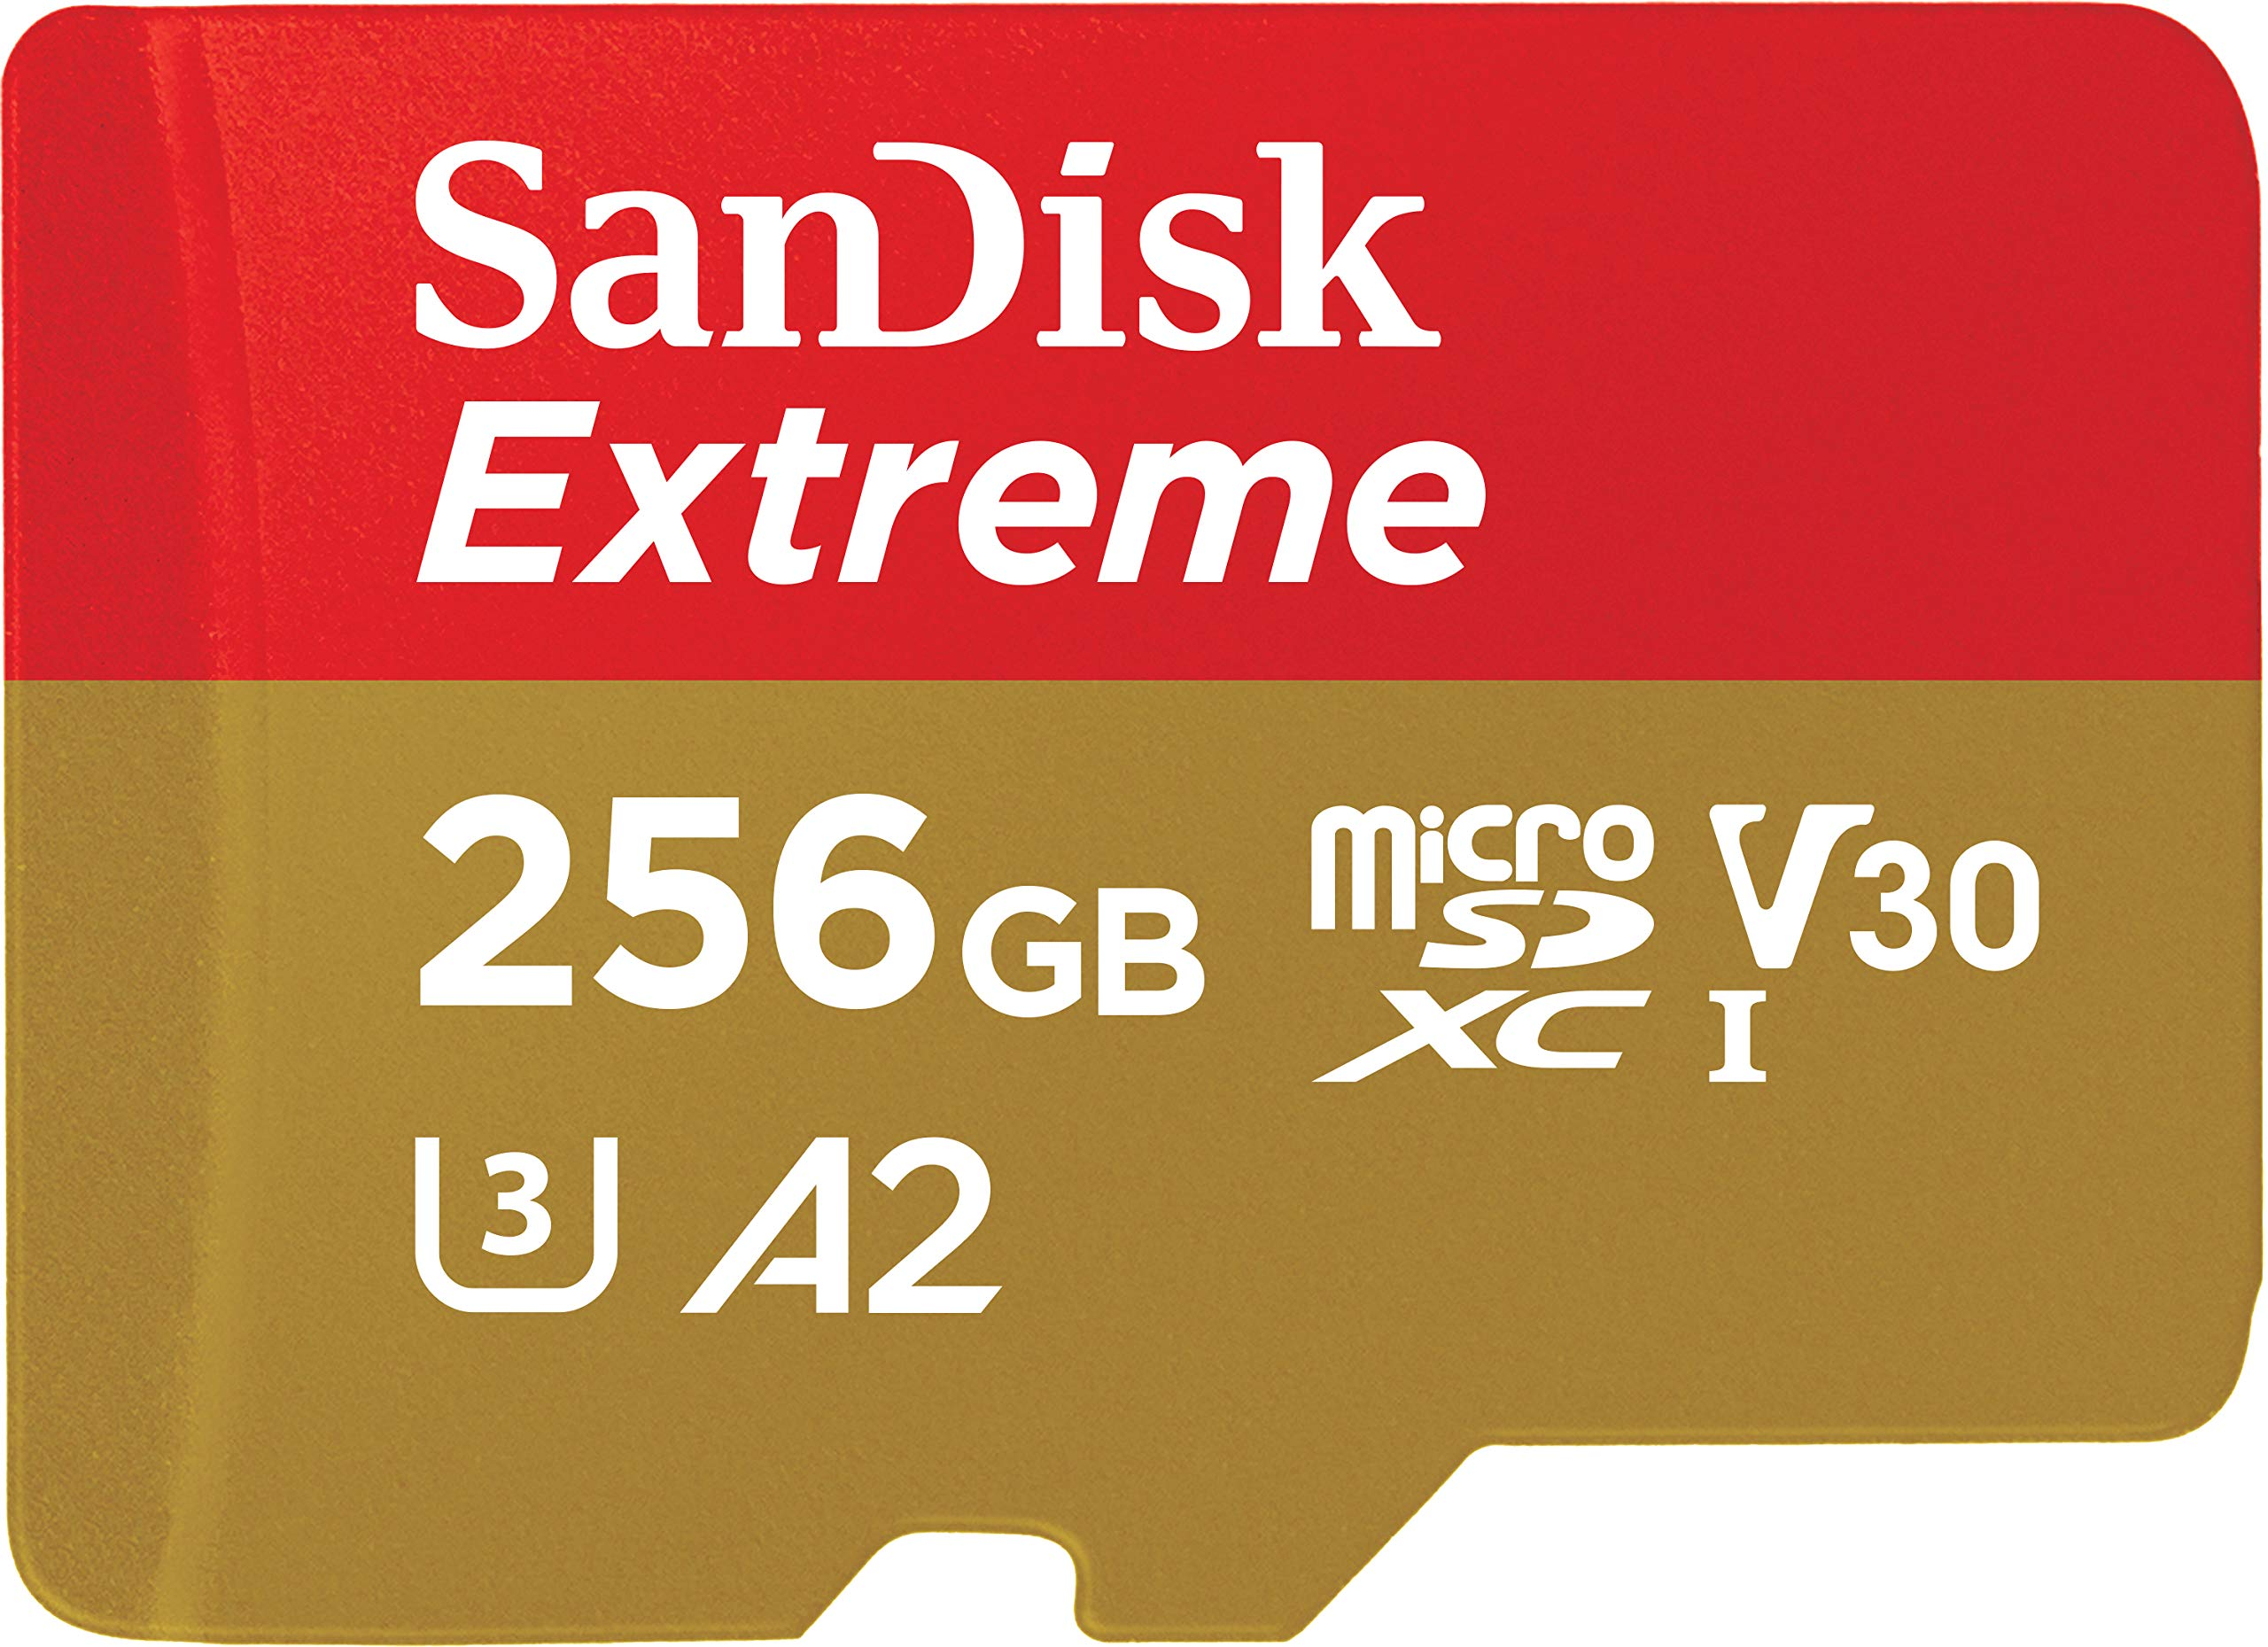 Sandisk 256gb Extreme Microsd Uhs-i Card With Adapter - U3.